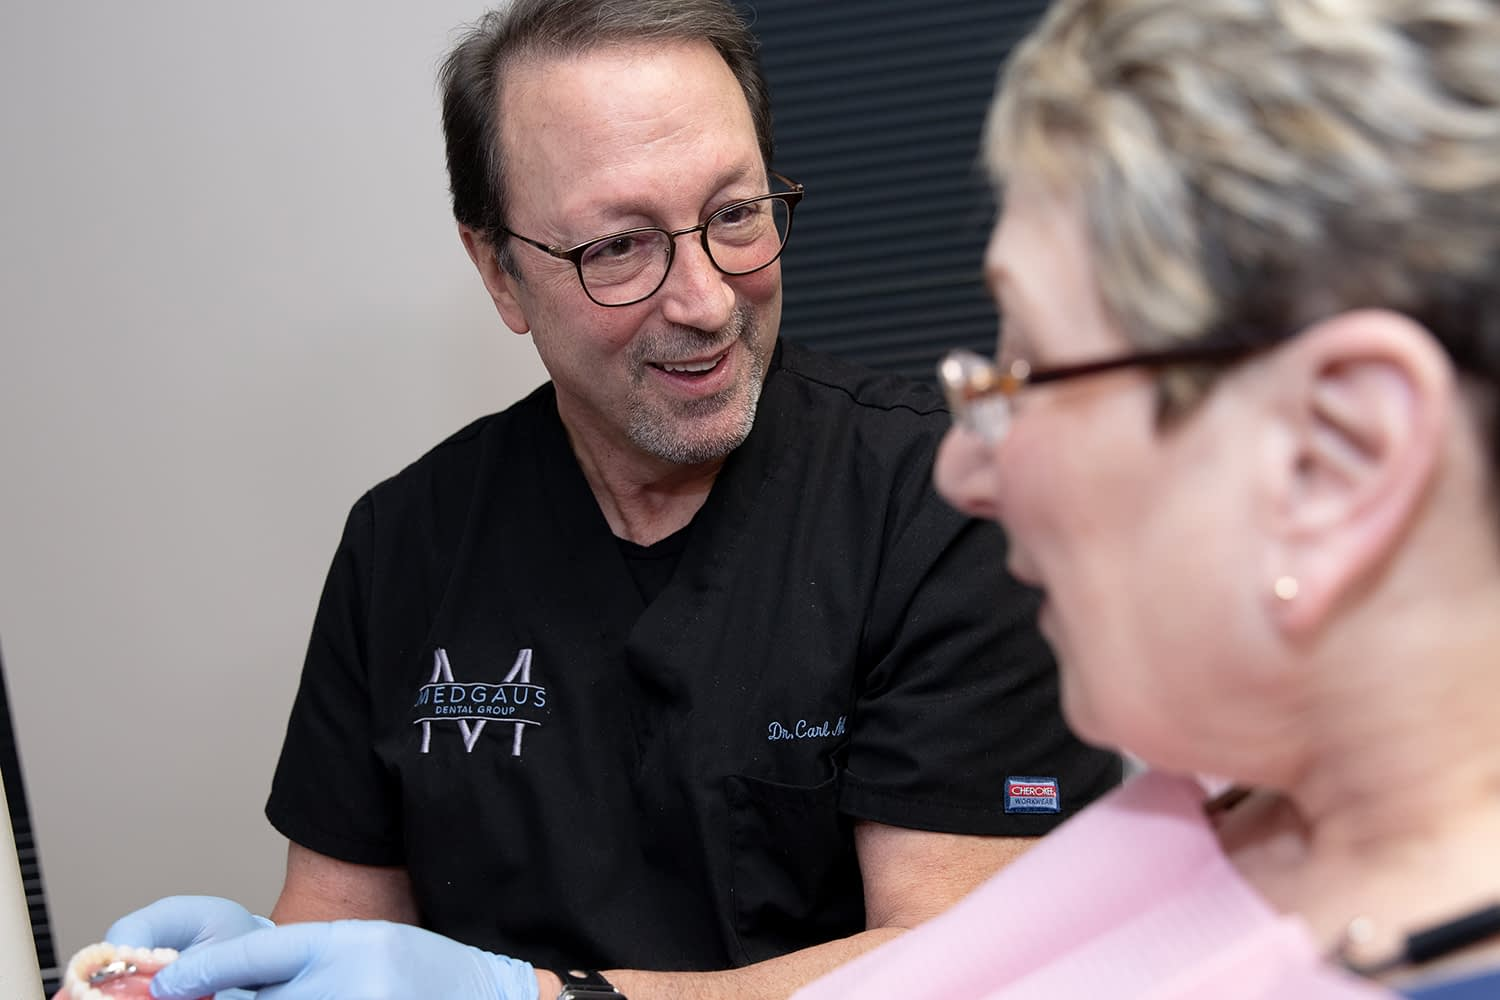 Dr. Medgaus speaking to patient about dental implants